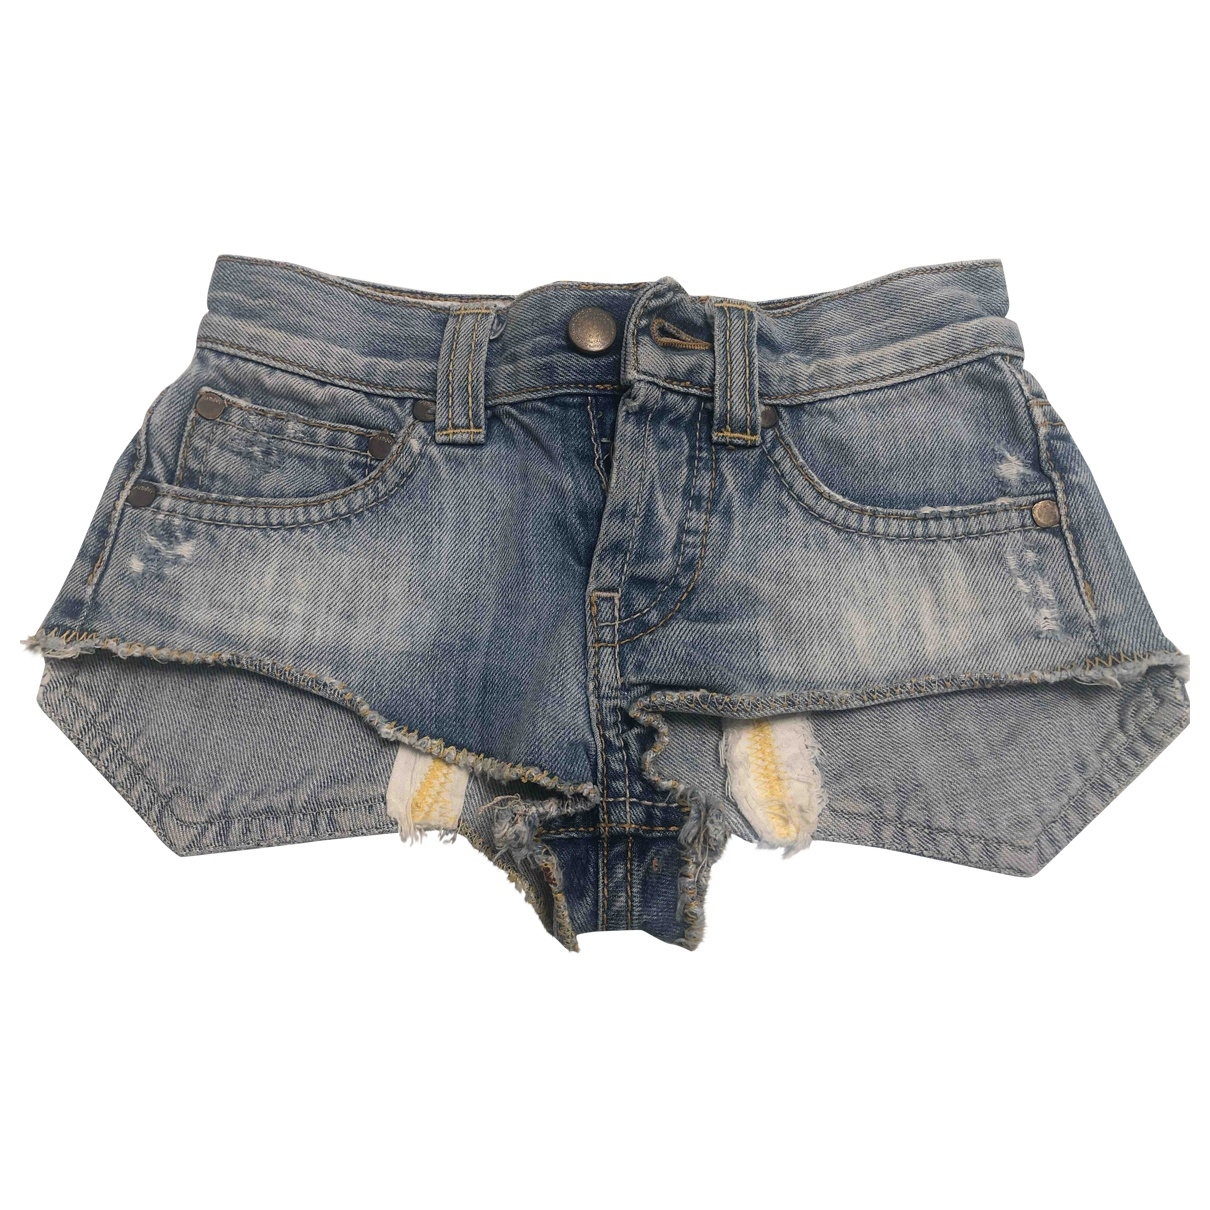 Dondup \N Denim - Jeans Shorts for Kids 4 years - up to 102cm FR